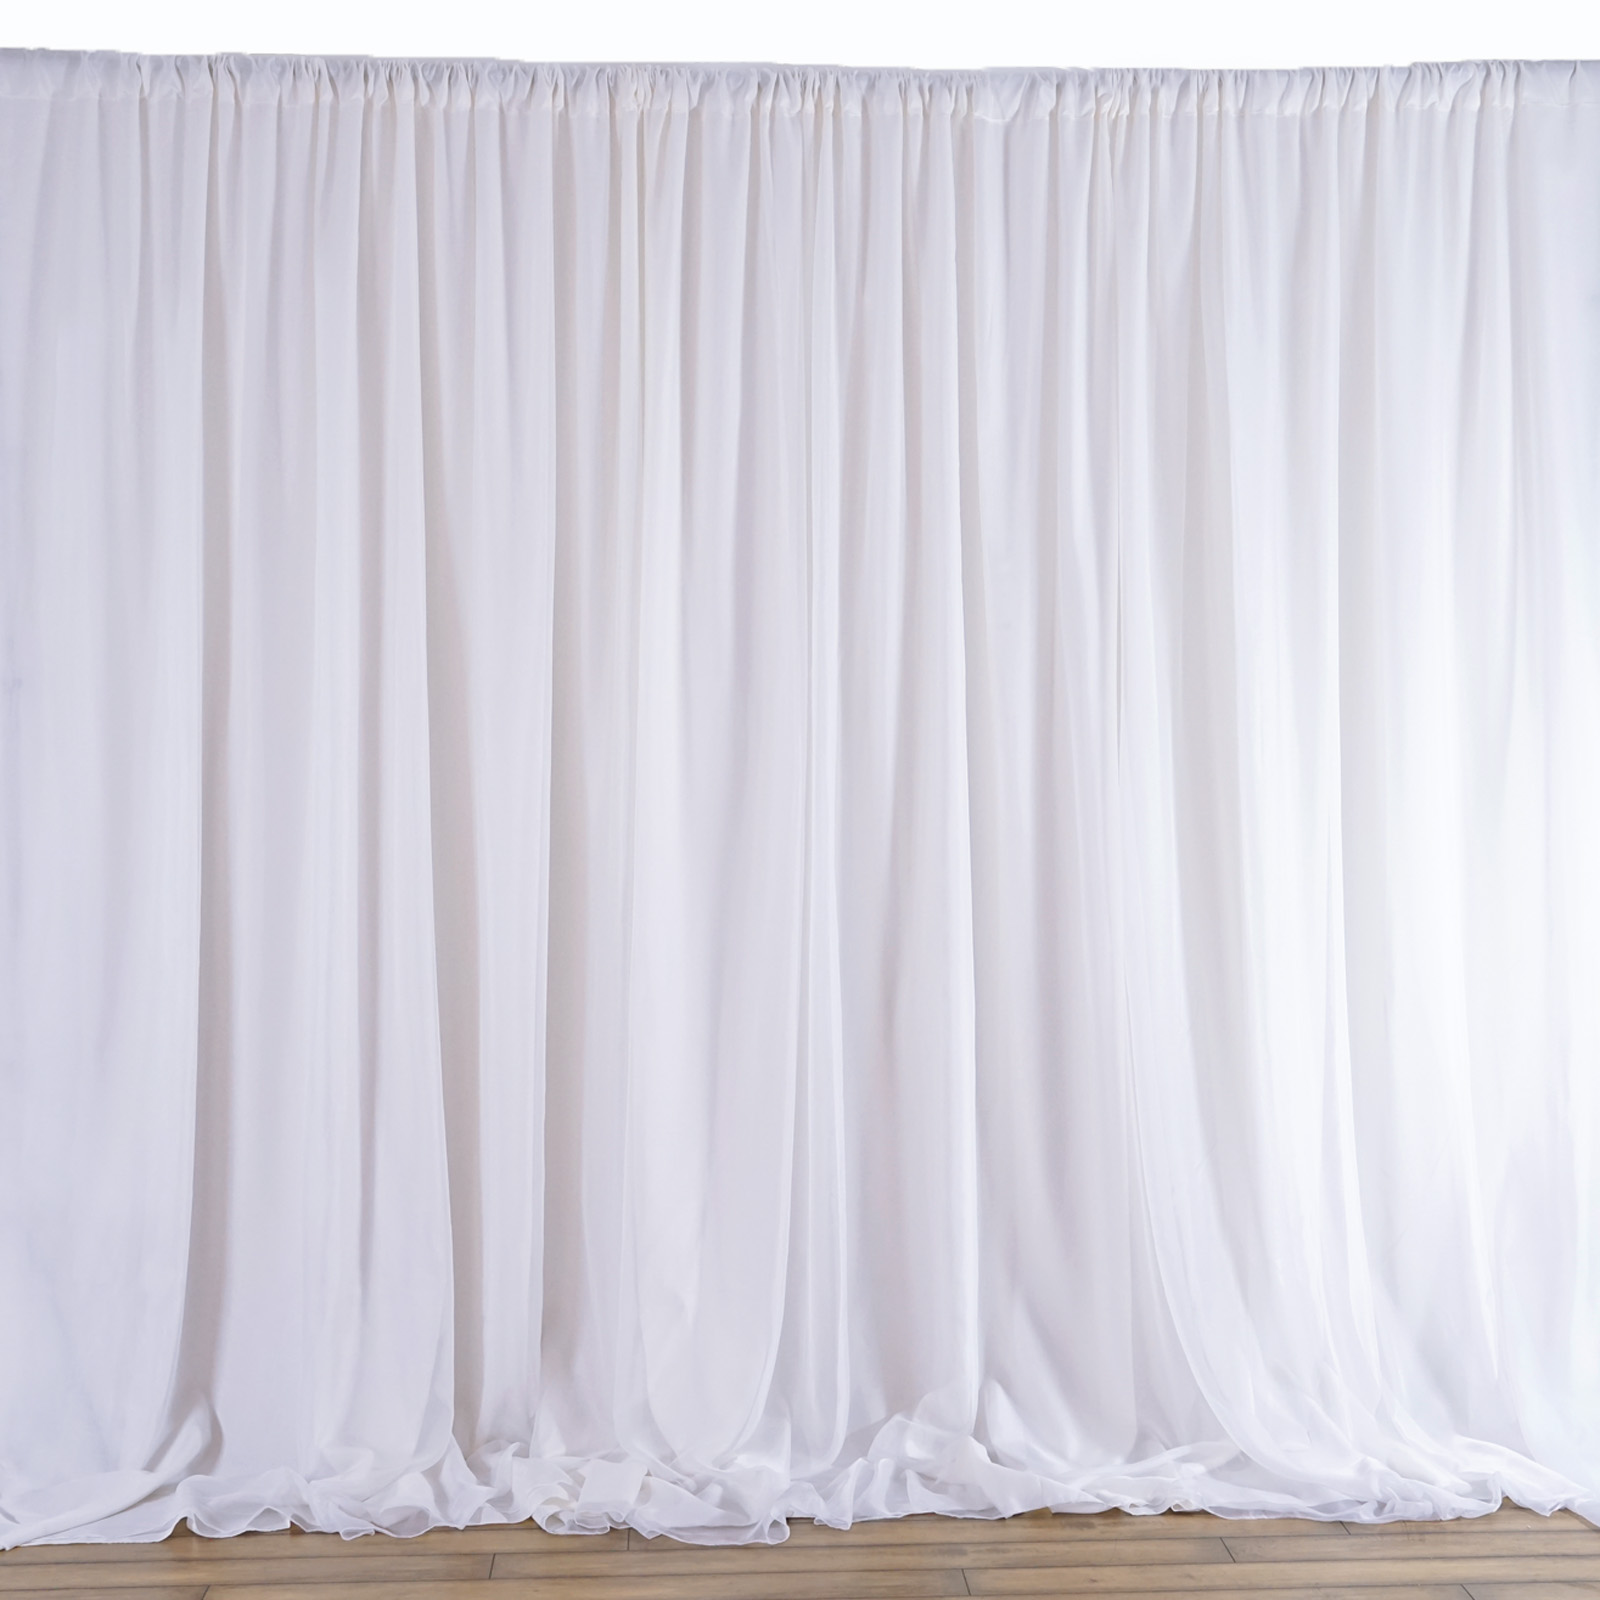 20 ft x 10 ft white fabric backdrop wedding party for Background curtain decoration